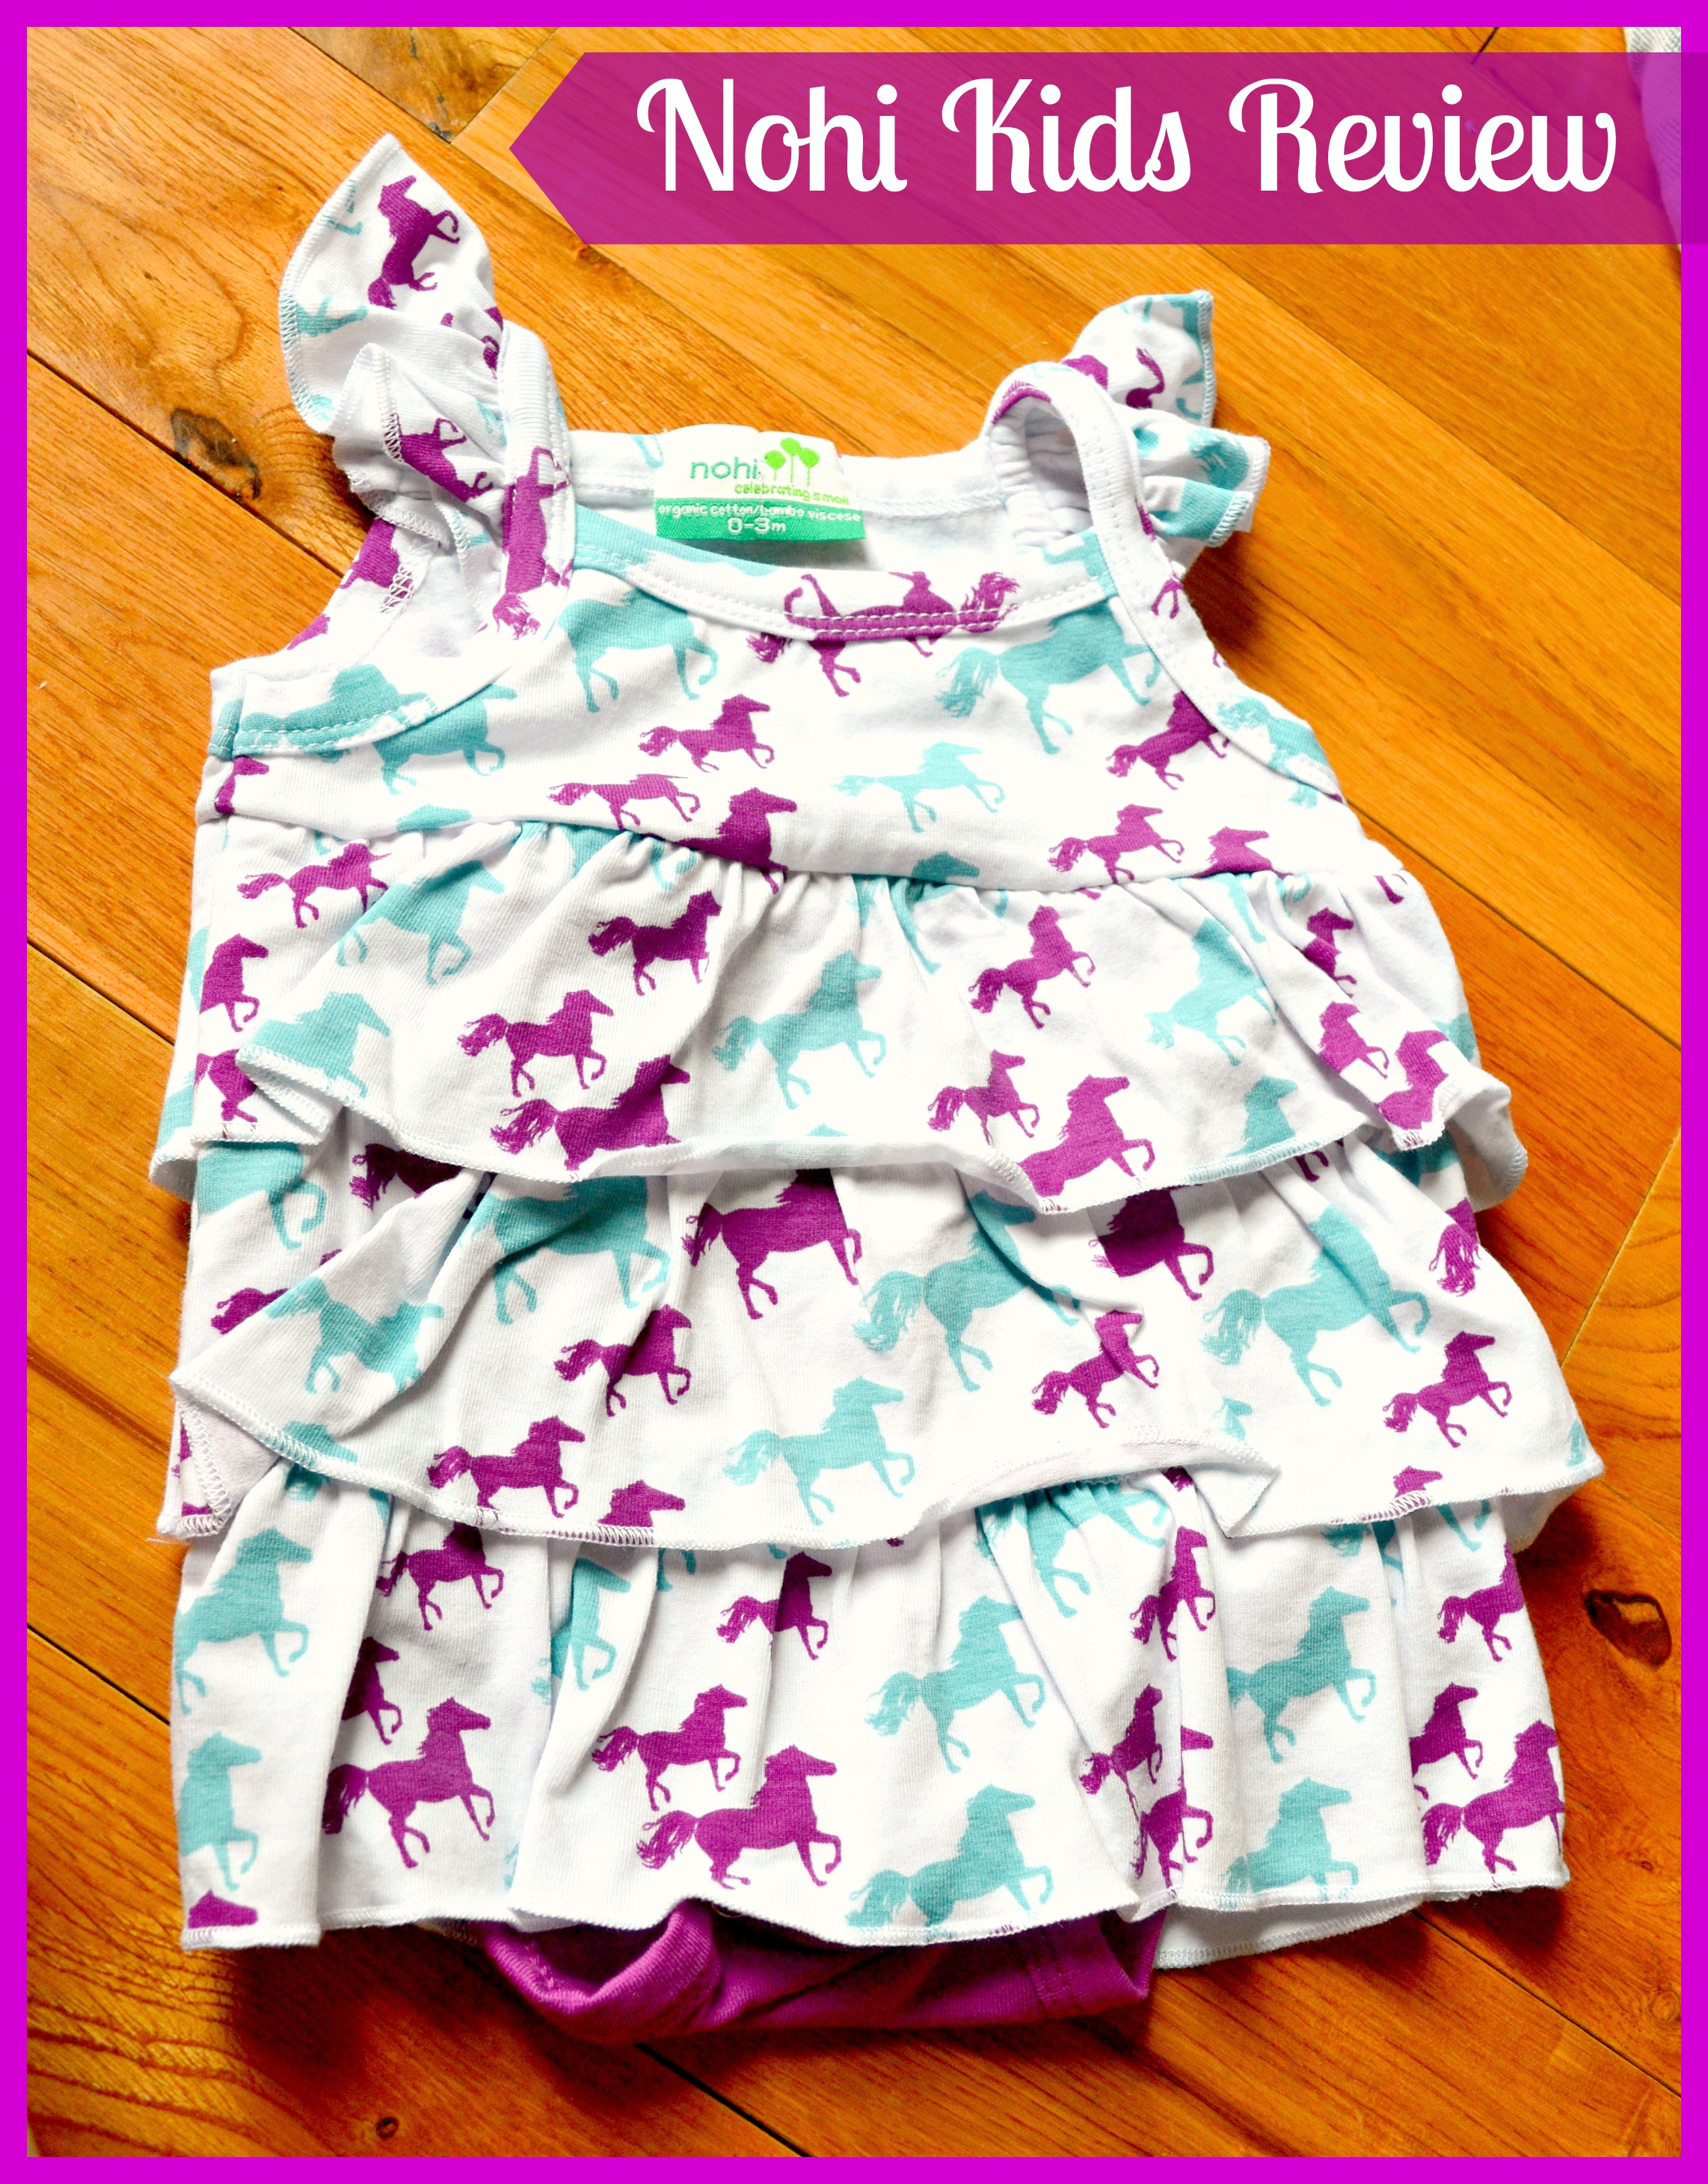 Nohi Kids Clothing Review (Getting Ready For Baby Gift Guide)